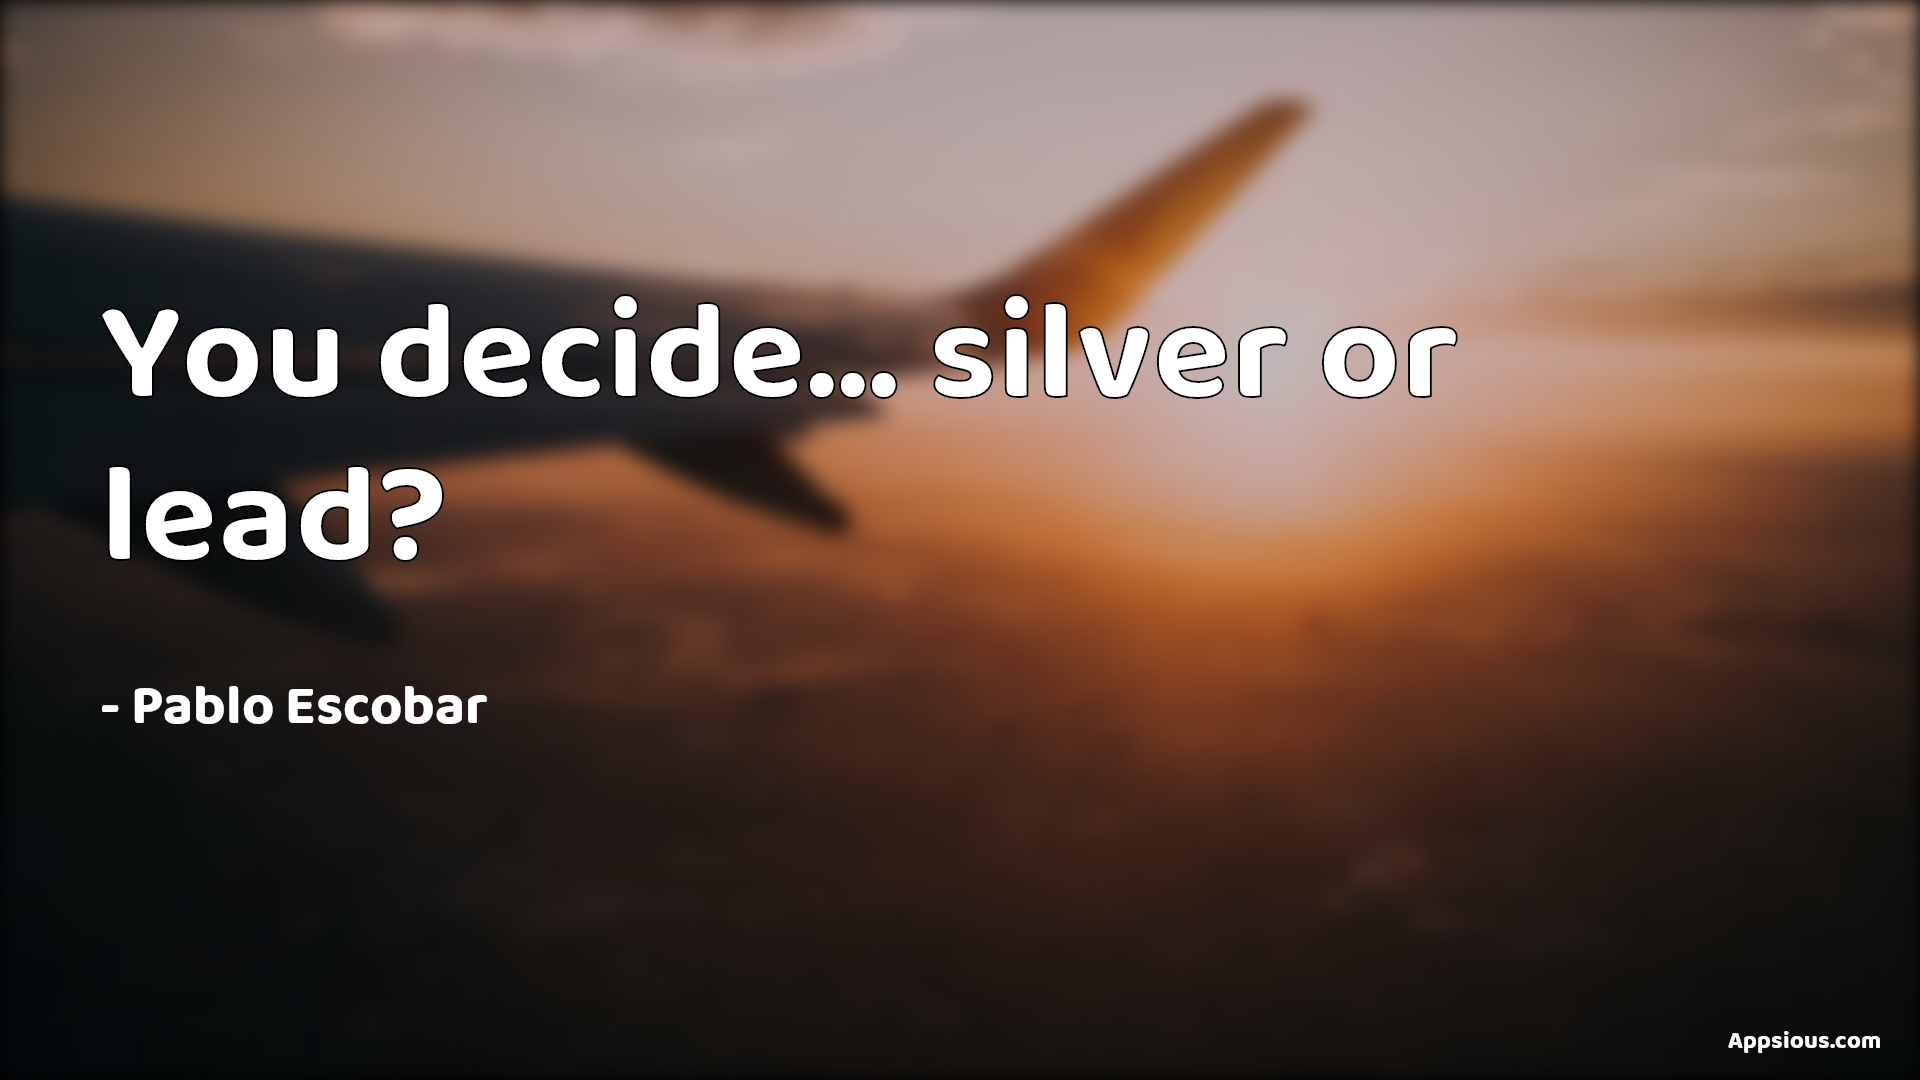 You decide... silver or lead?